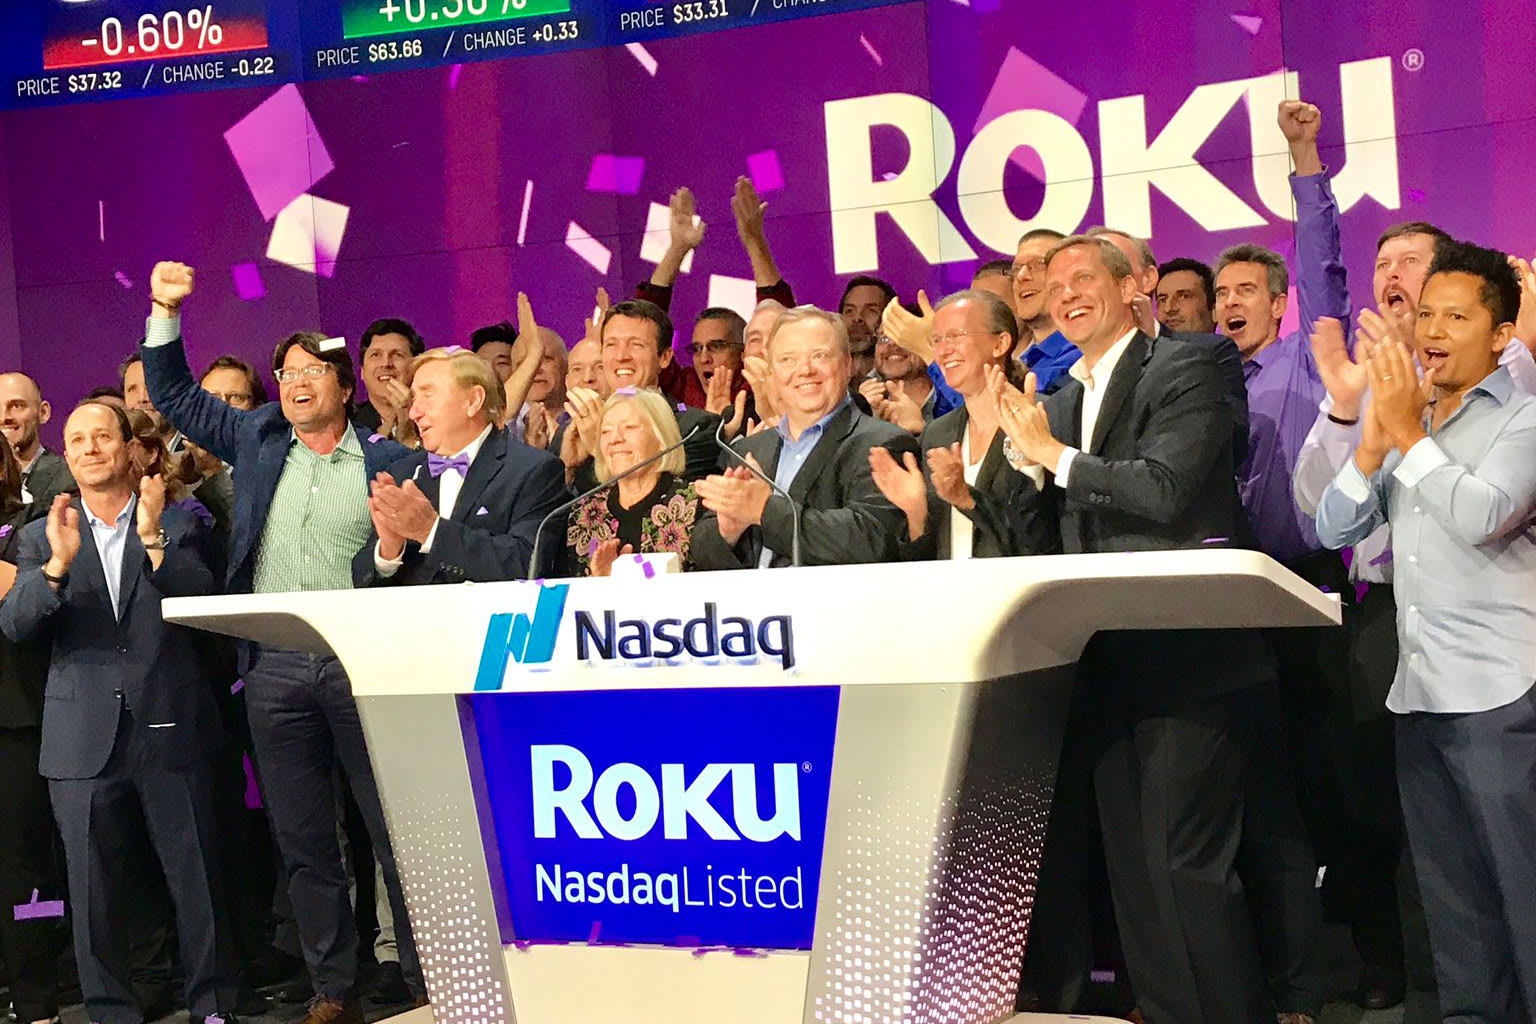 Roku is the best-performing tech stock of 2019, but skeptics see a litany of risks